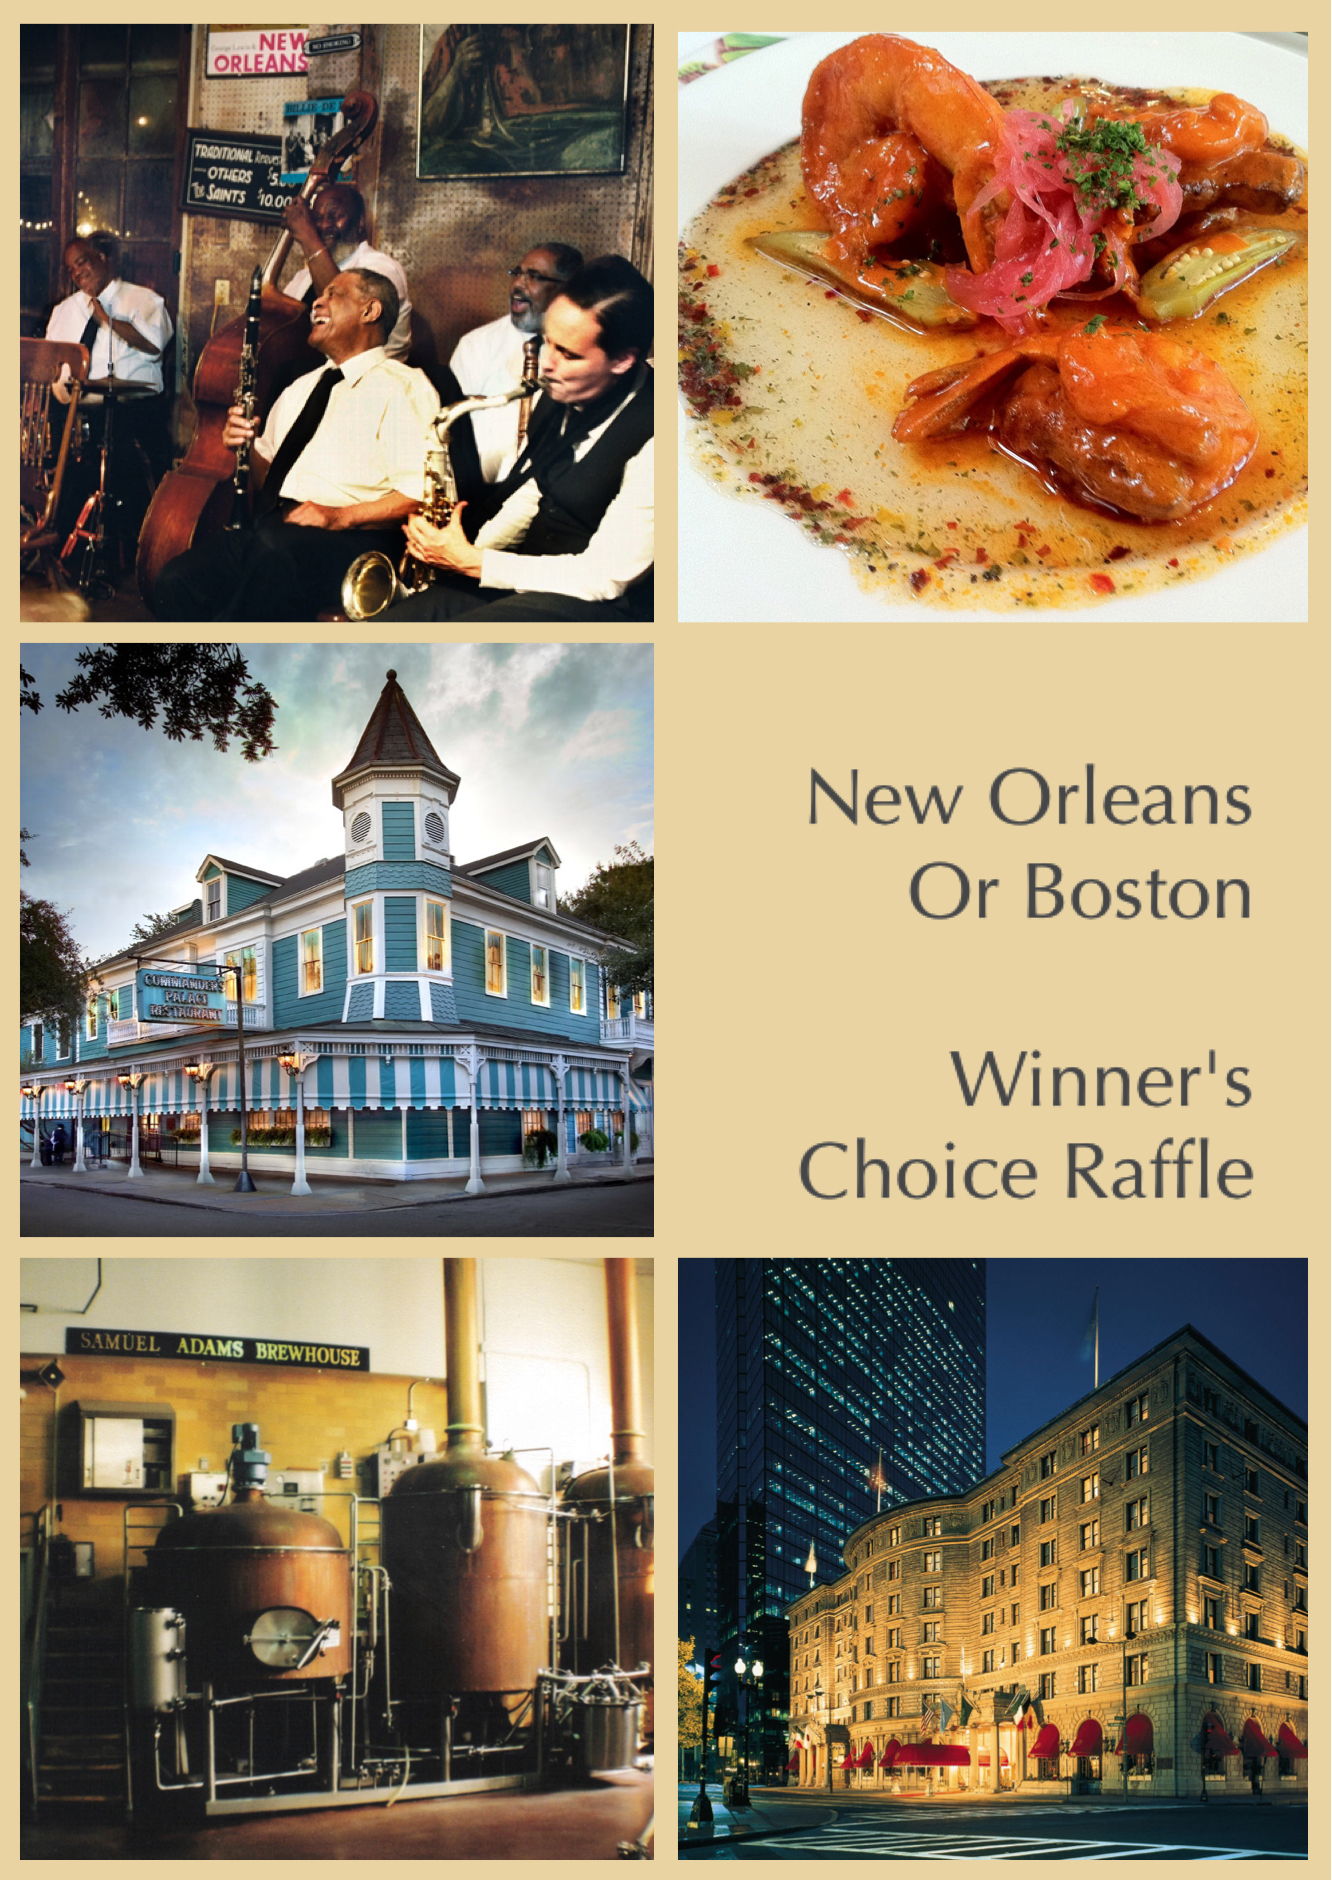 Win A Trip to Boston or New Orleans